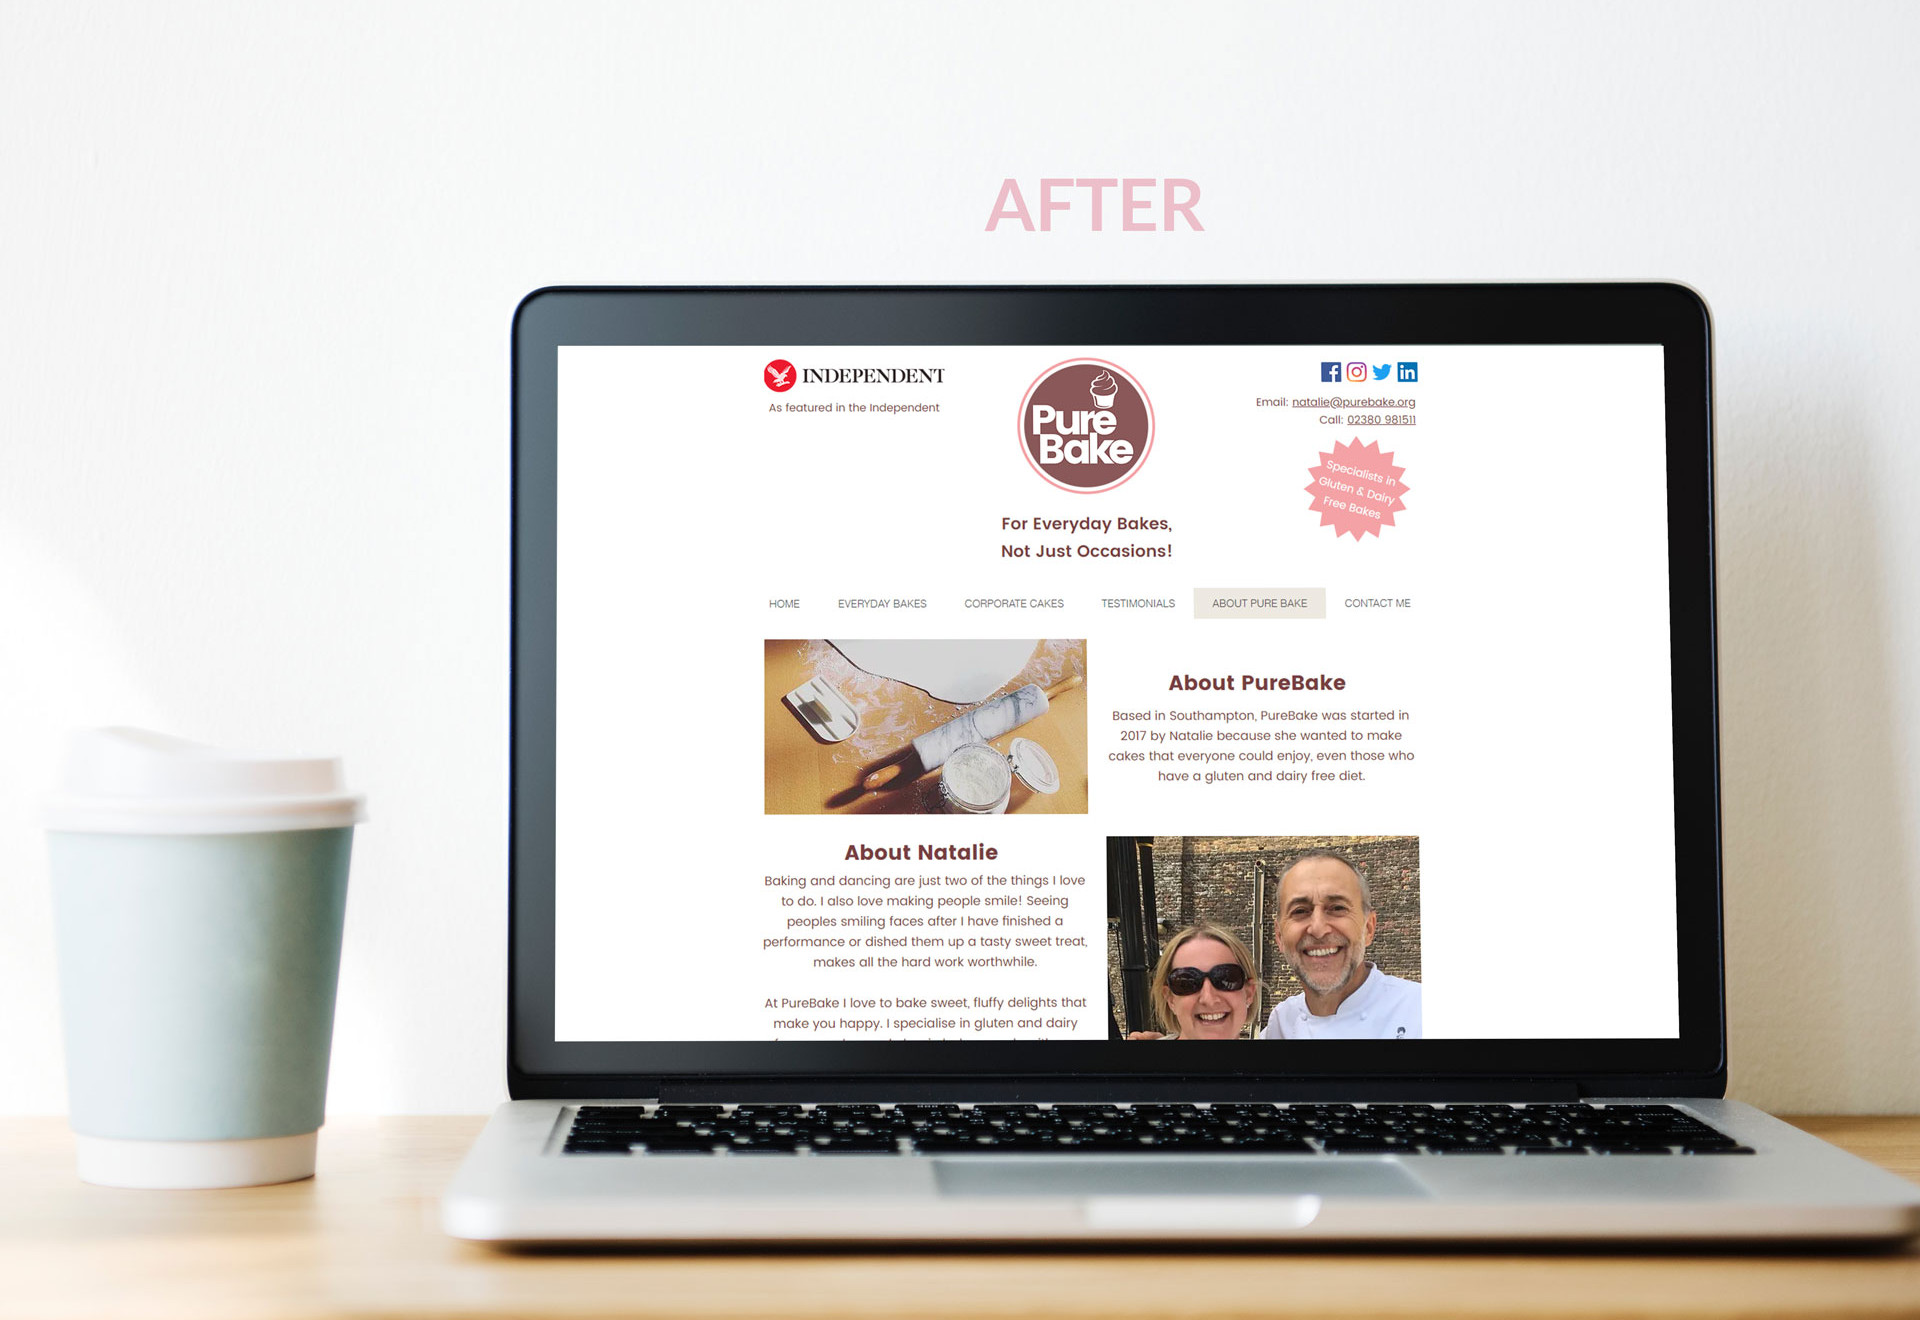 PureBake Story - Website Page After